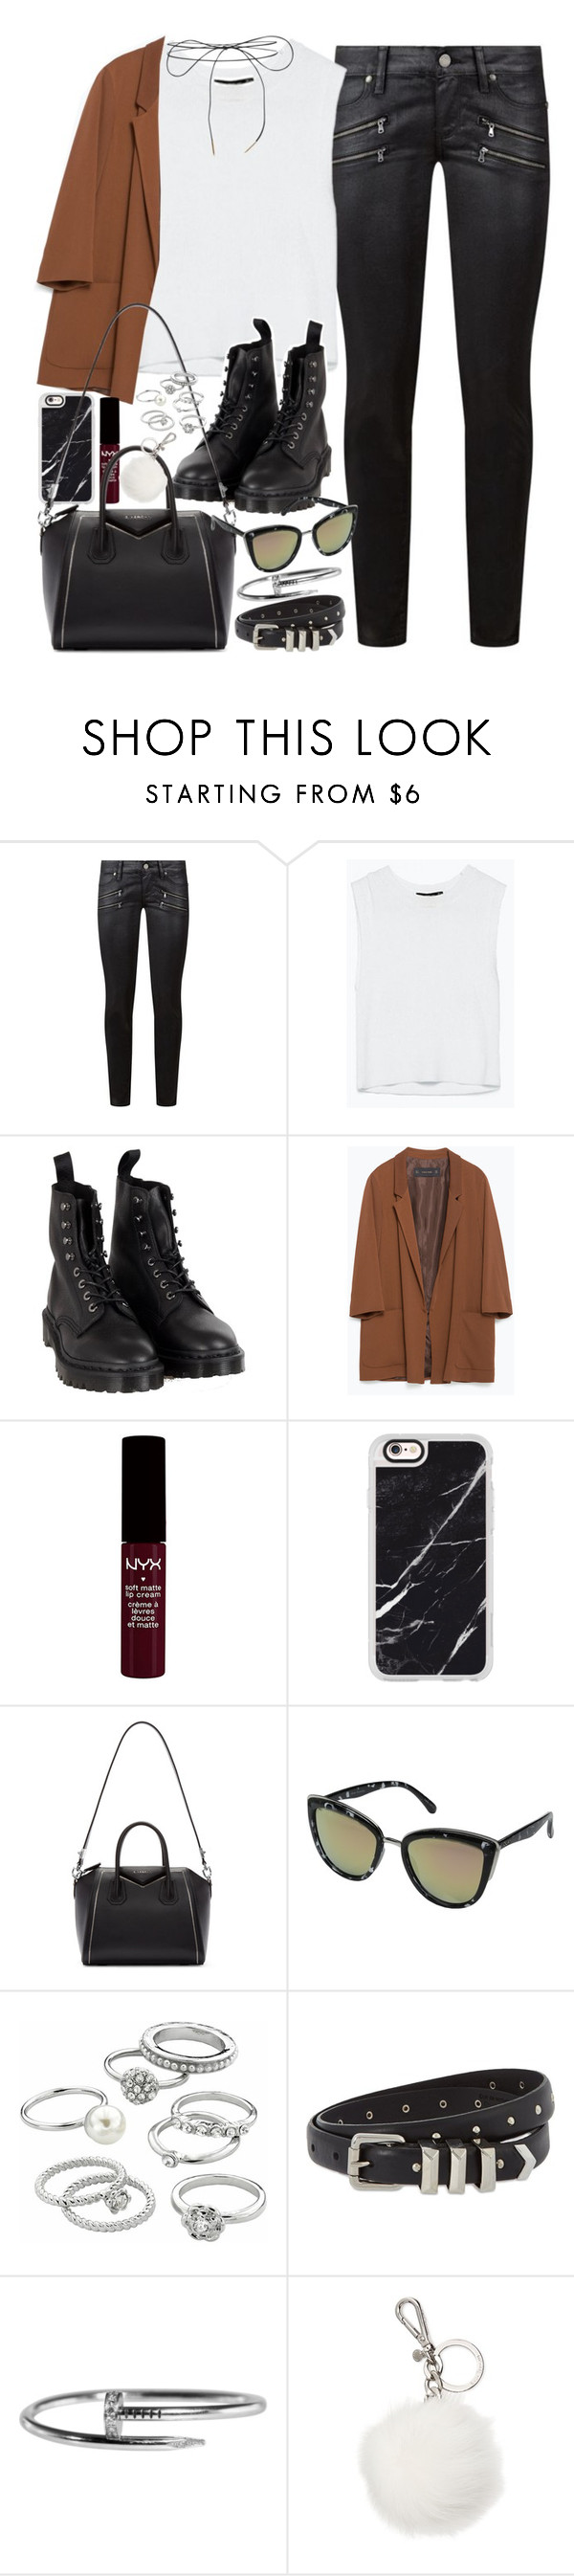 """Outfit with a blazer and Dr Martens"" by ferned ❤ liked on Polyvore featuring Paige Denim, Dr. Martens, Zara, Casetify, Givenchy, Quay, Candie's, The Kooples, Michael Kors and Lilou"